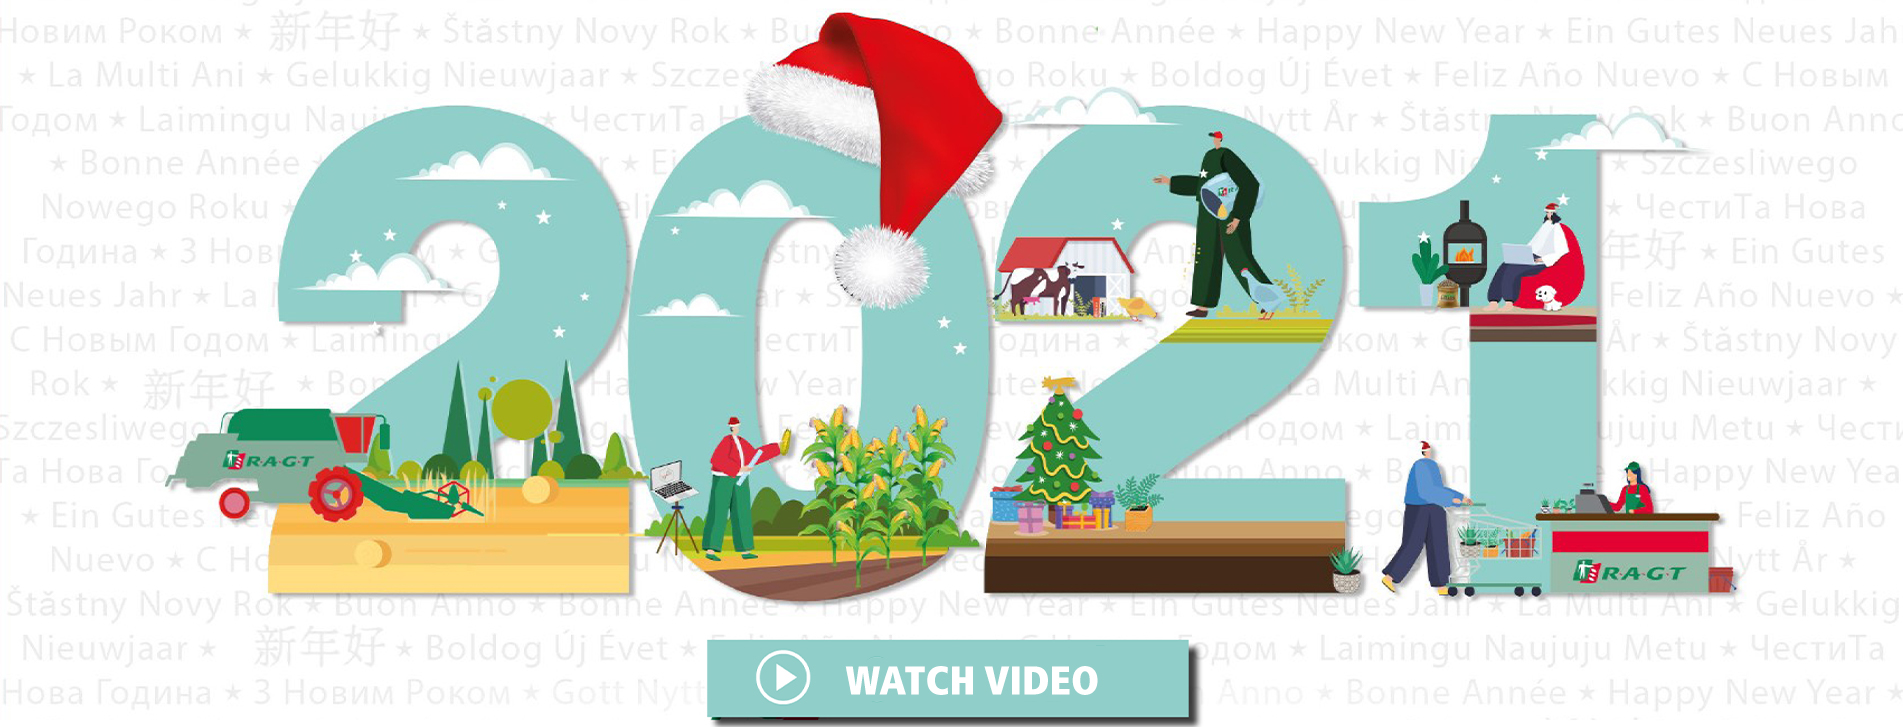 Watch video happy new year 2021 RAGT Group